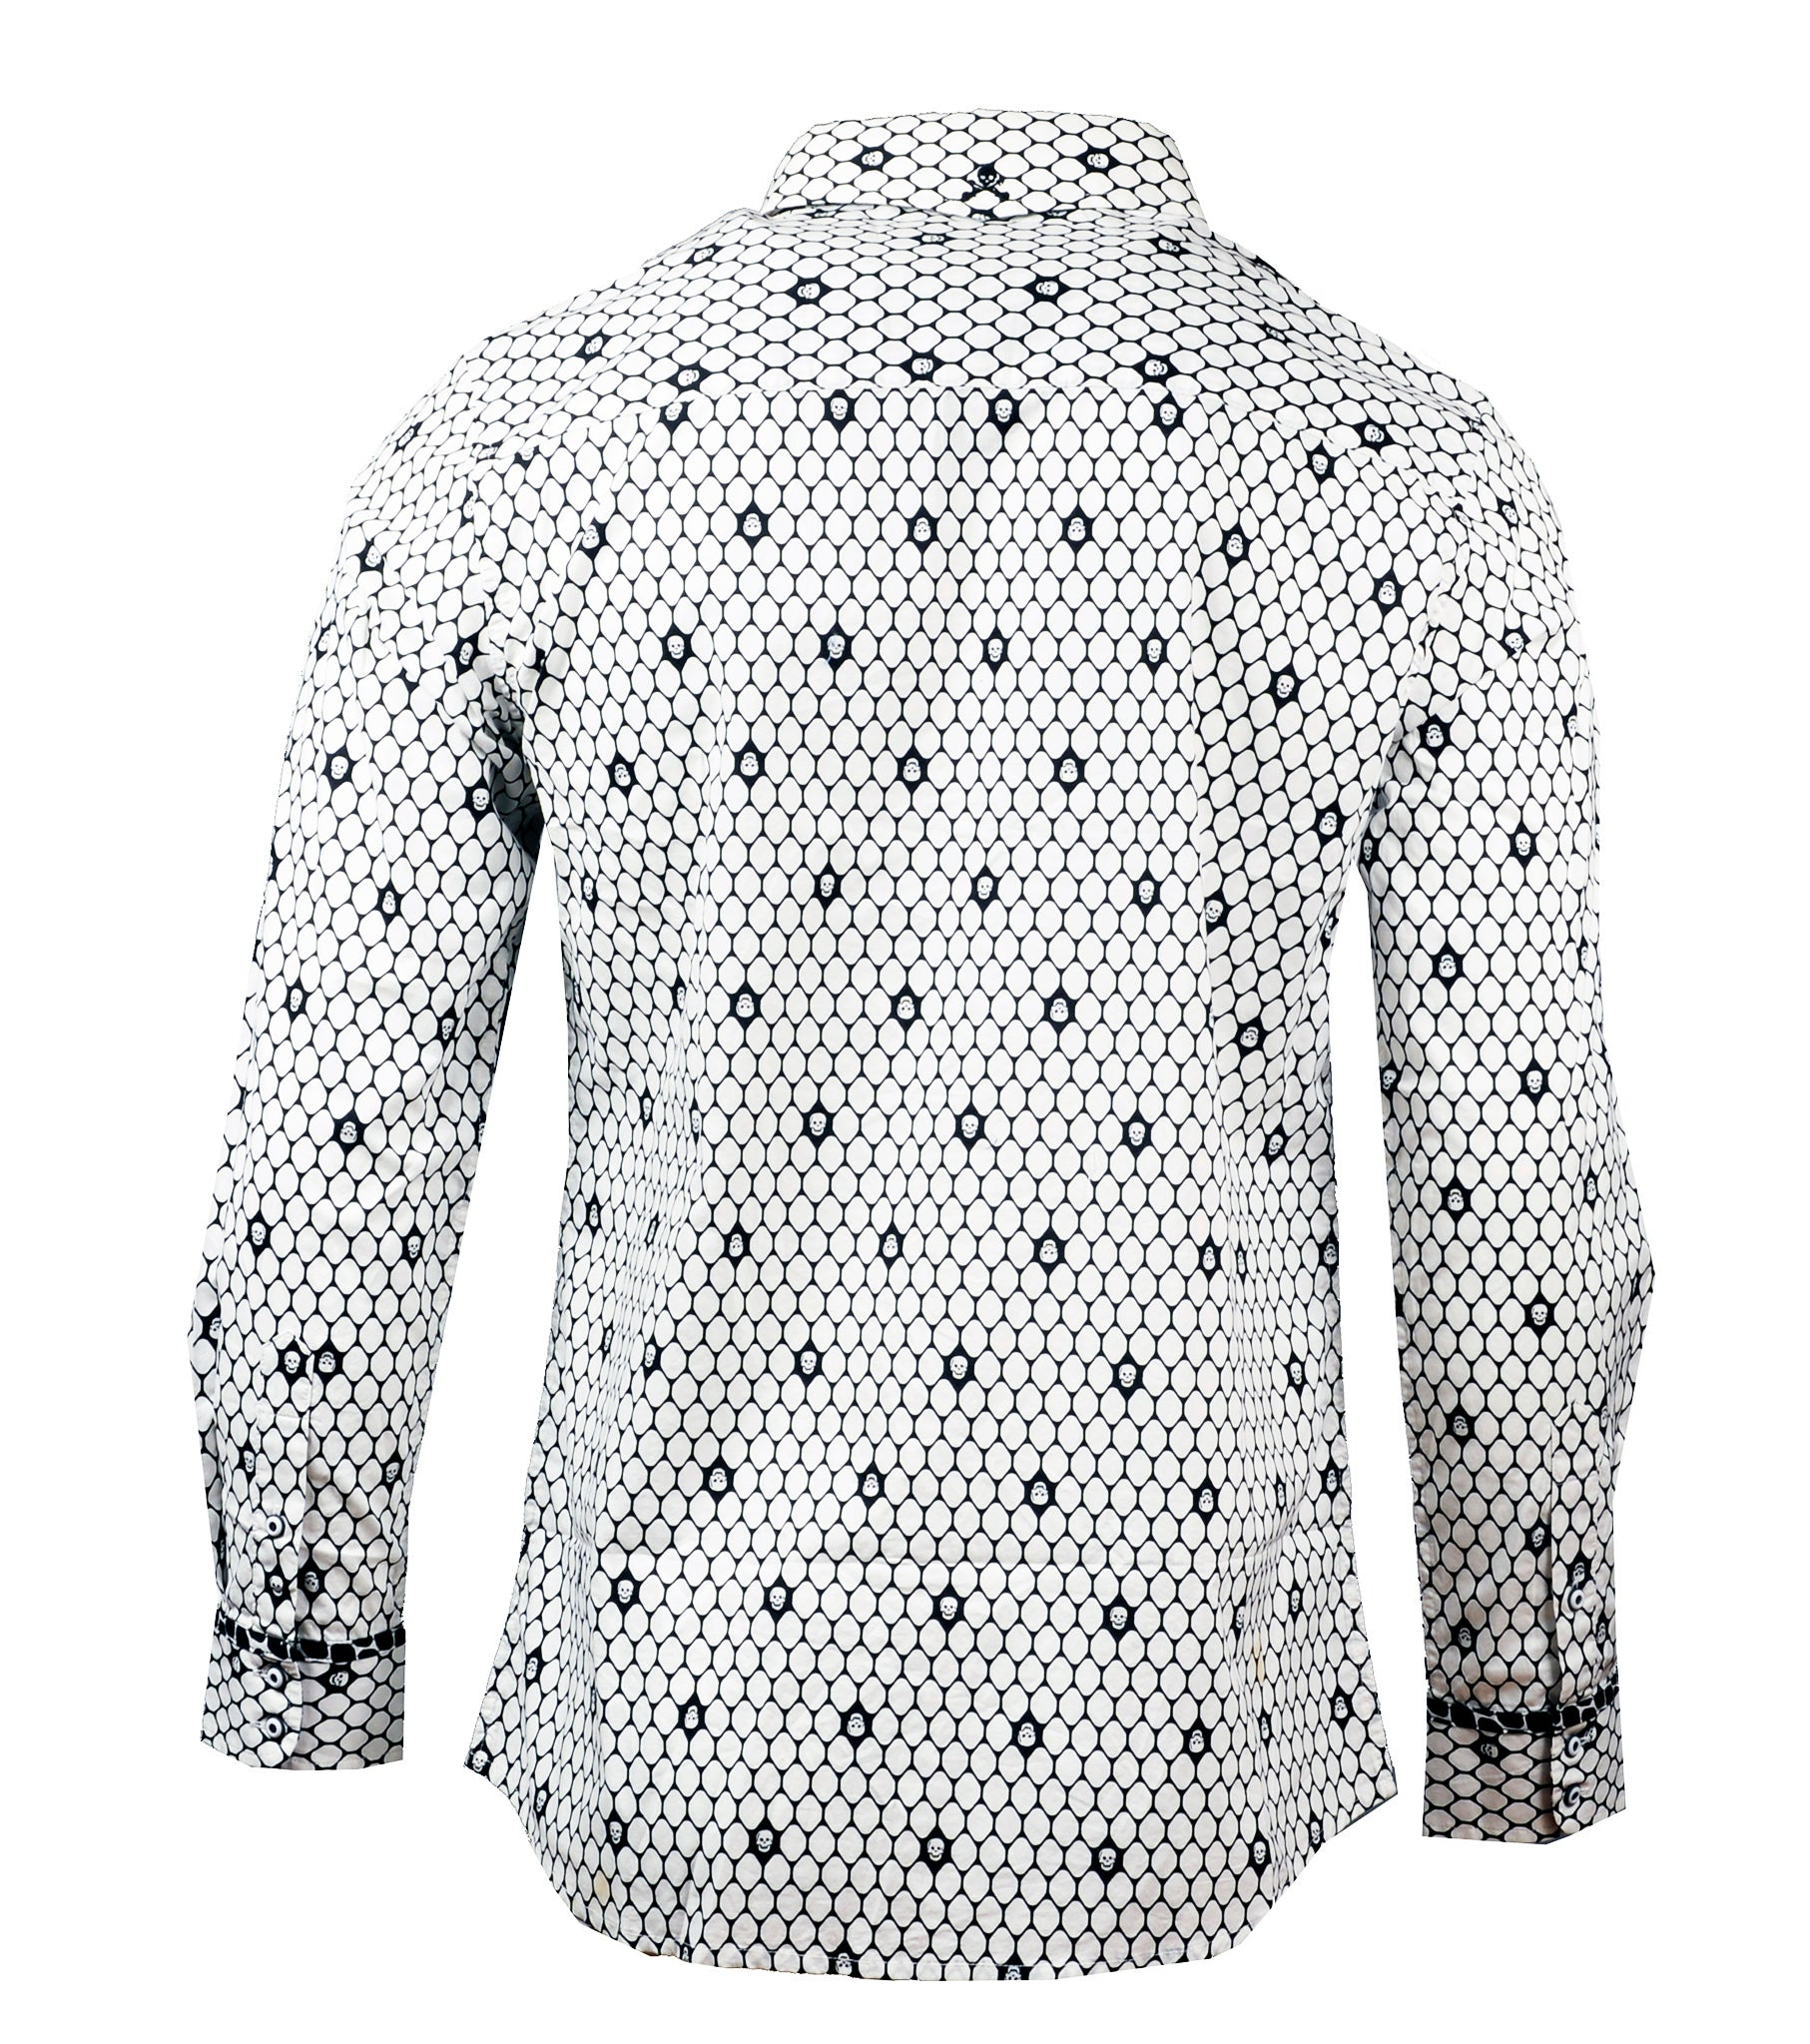 Men's long sleeve Casual Fashion Button Up Shirt - Overkill White Skull by Rock Roll n Soul2